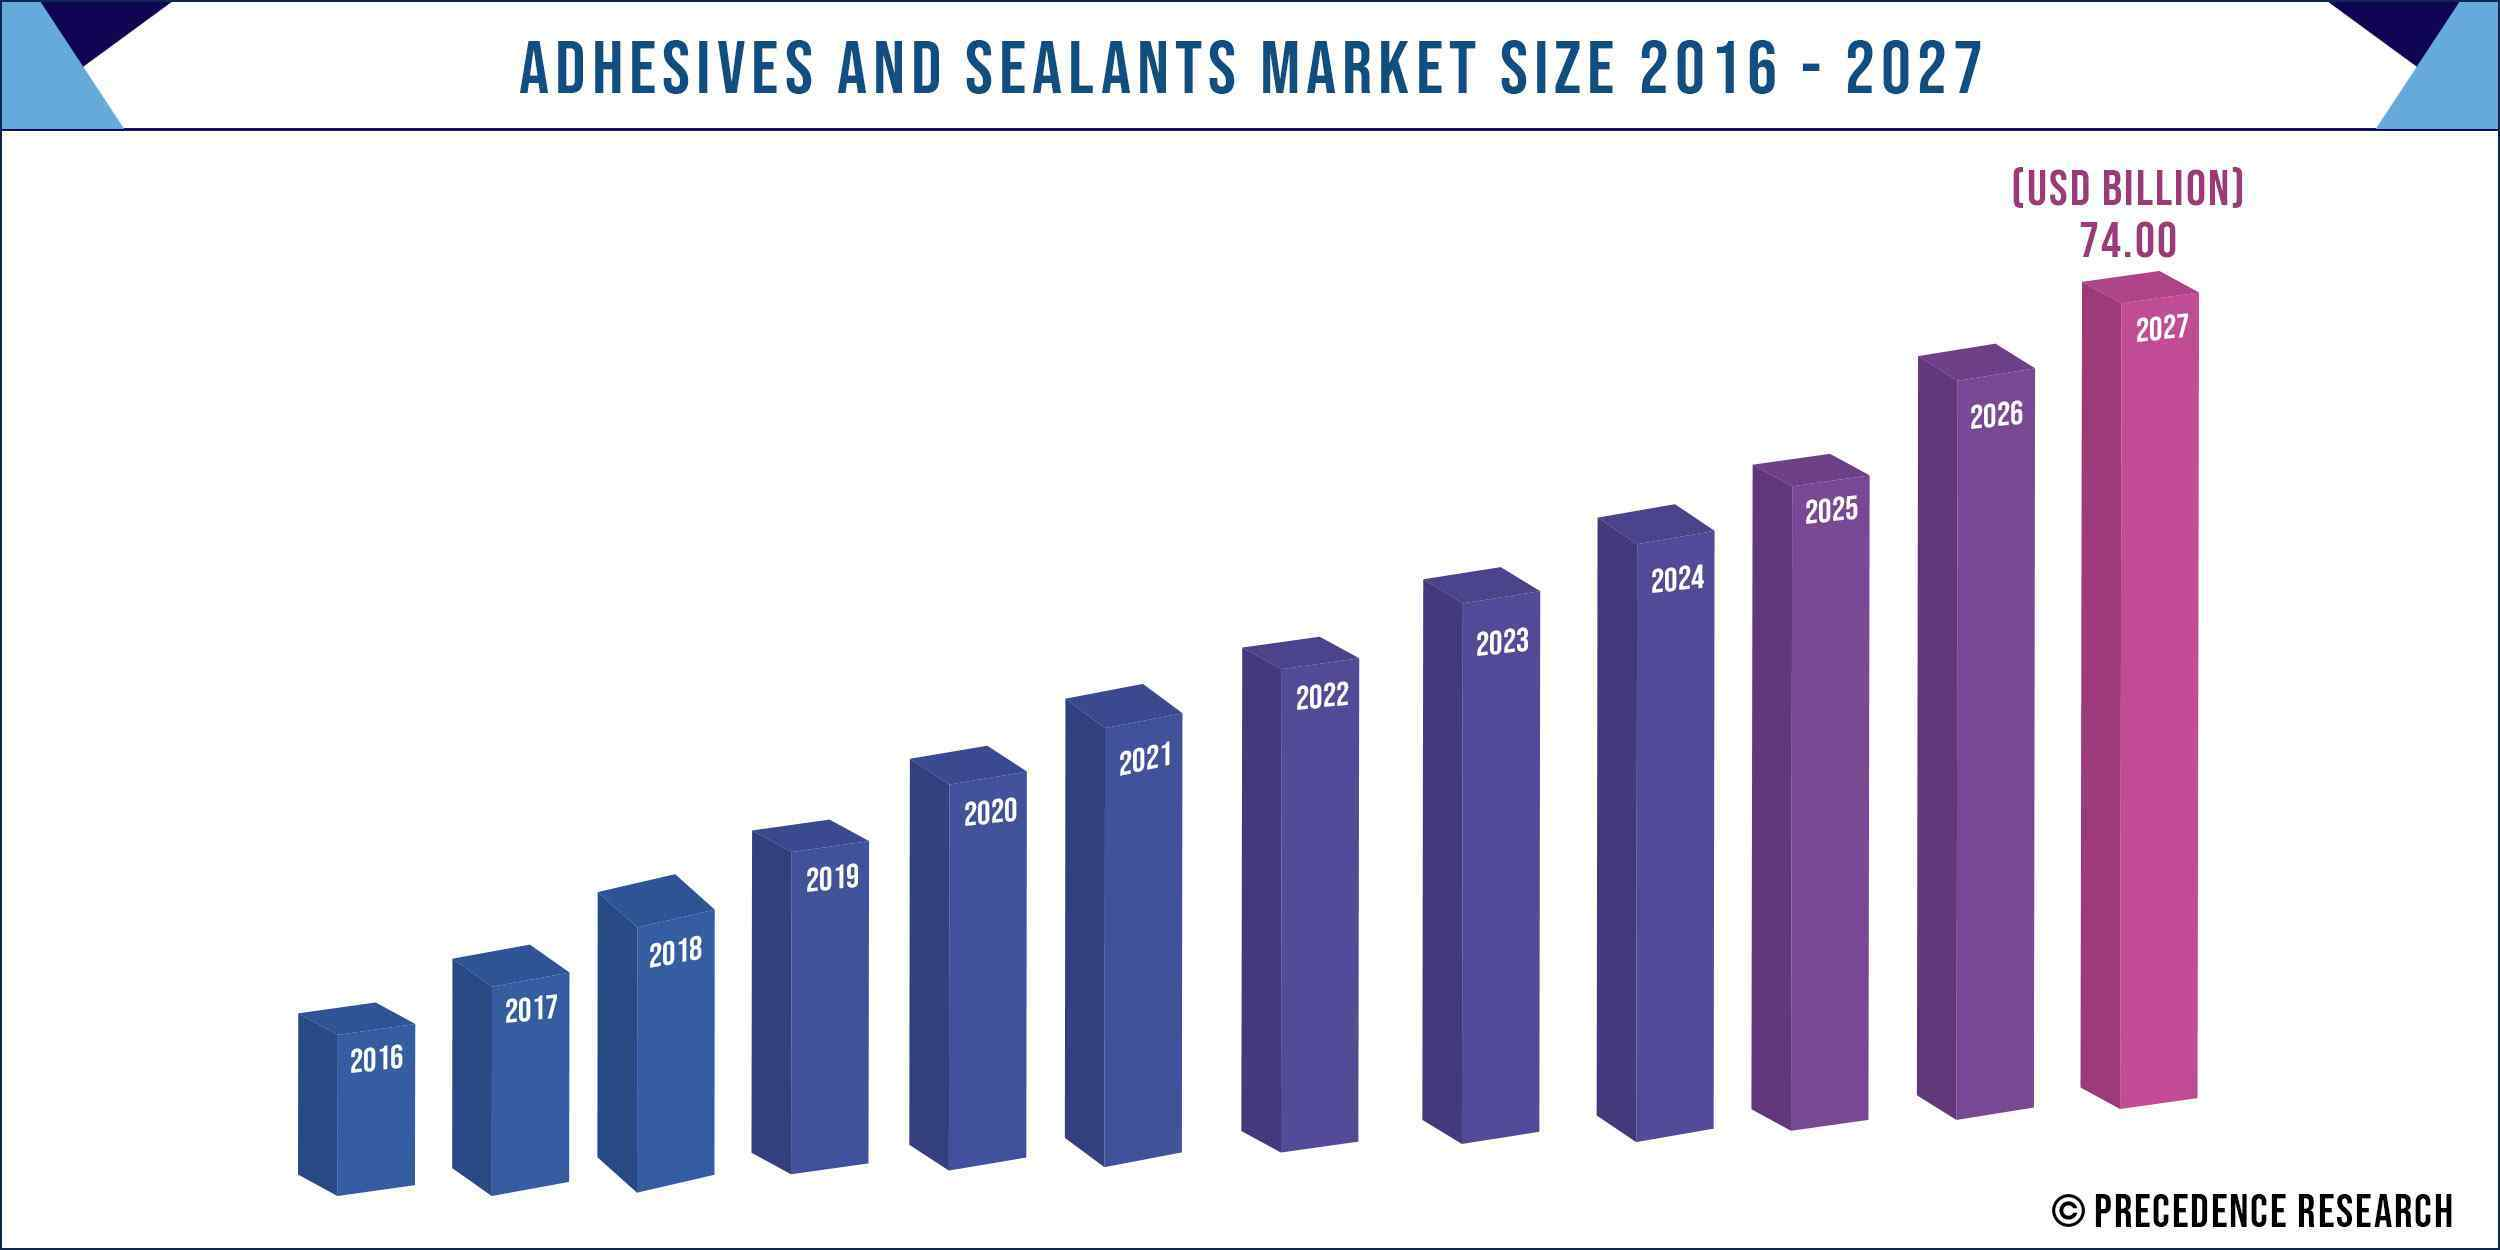 Adhesives and Sealants Market Size 2016 to 2027